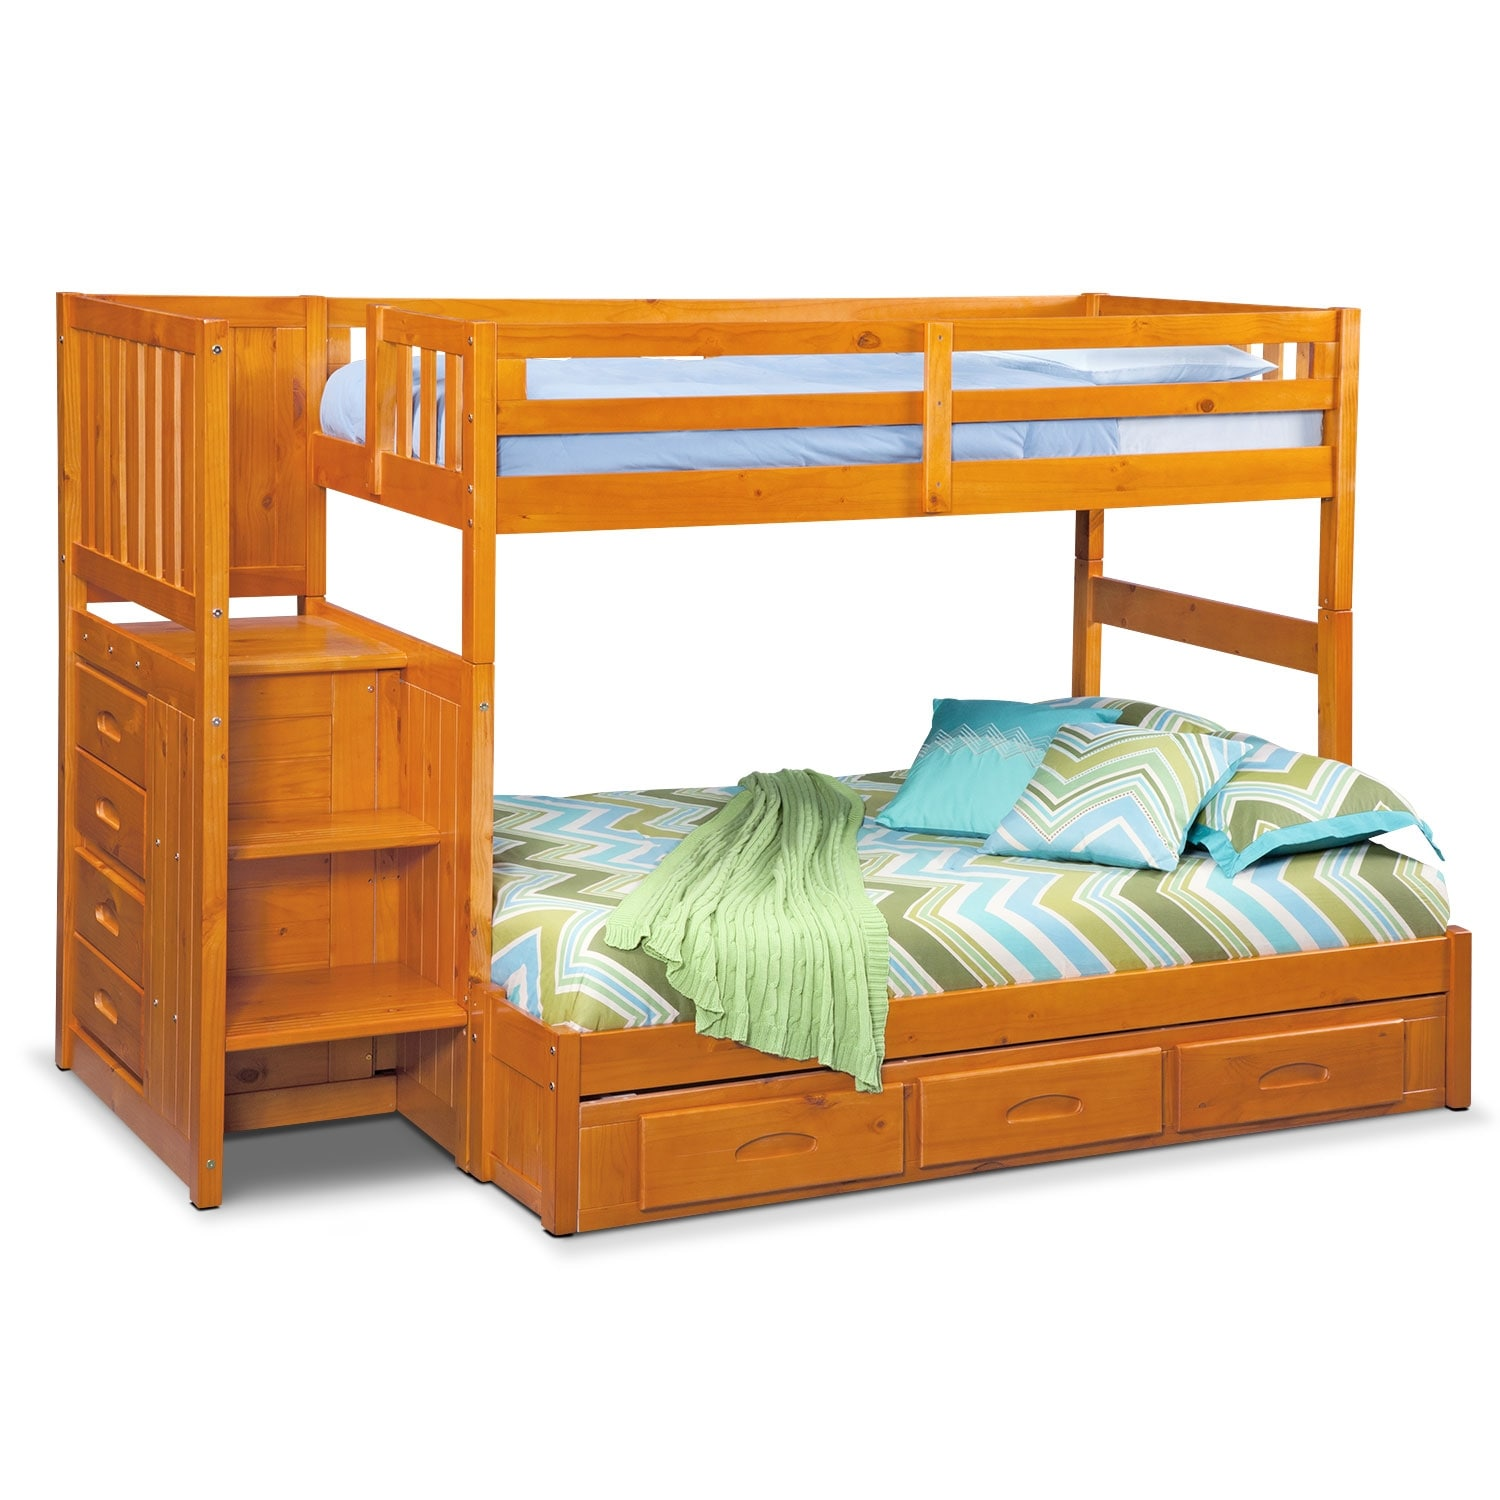 Kids Furniture - Ranger Twin over Full Bunk Bed with Storage Stairs & Underbed Drawers  - Pine